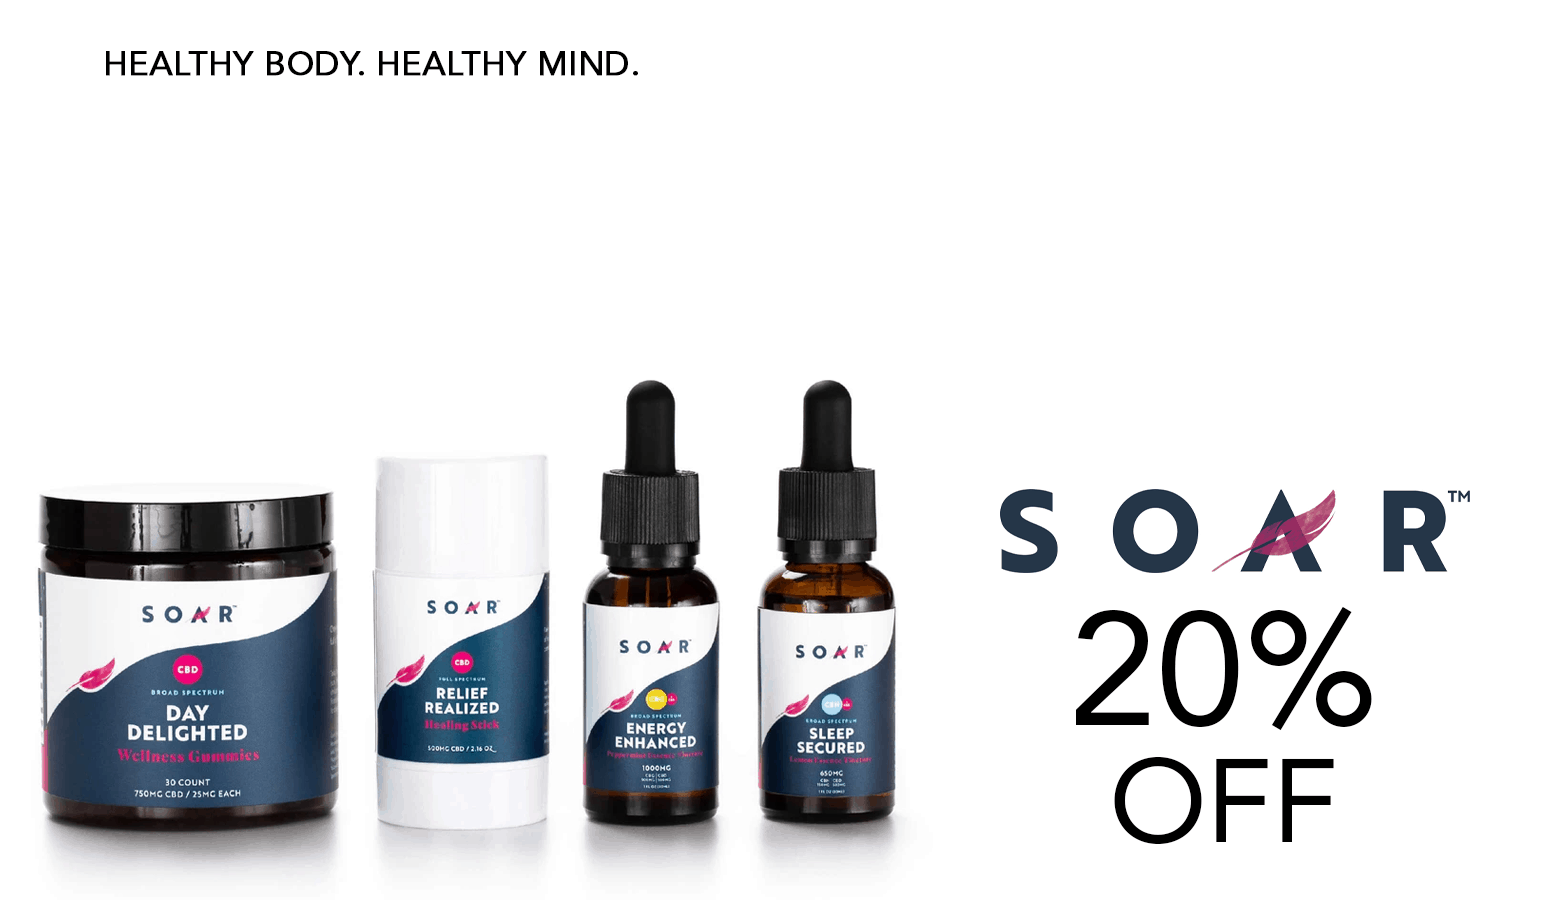 Soar CBD Coupon Code Offer Website